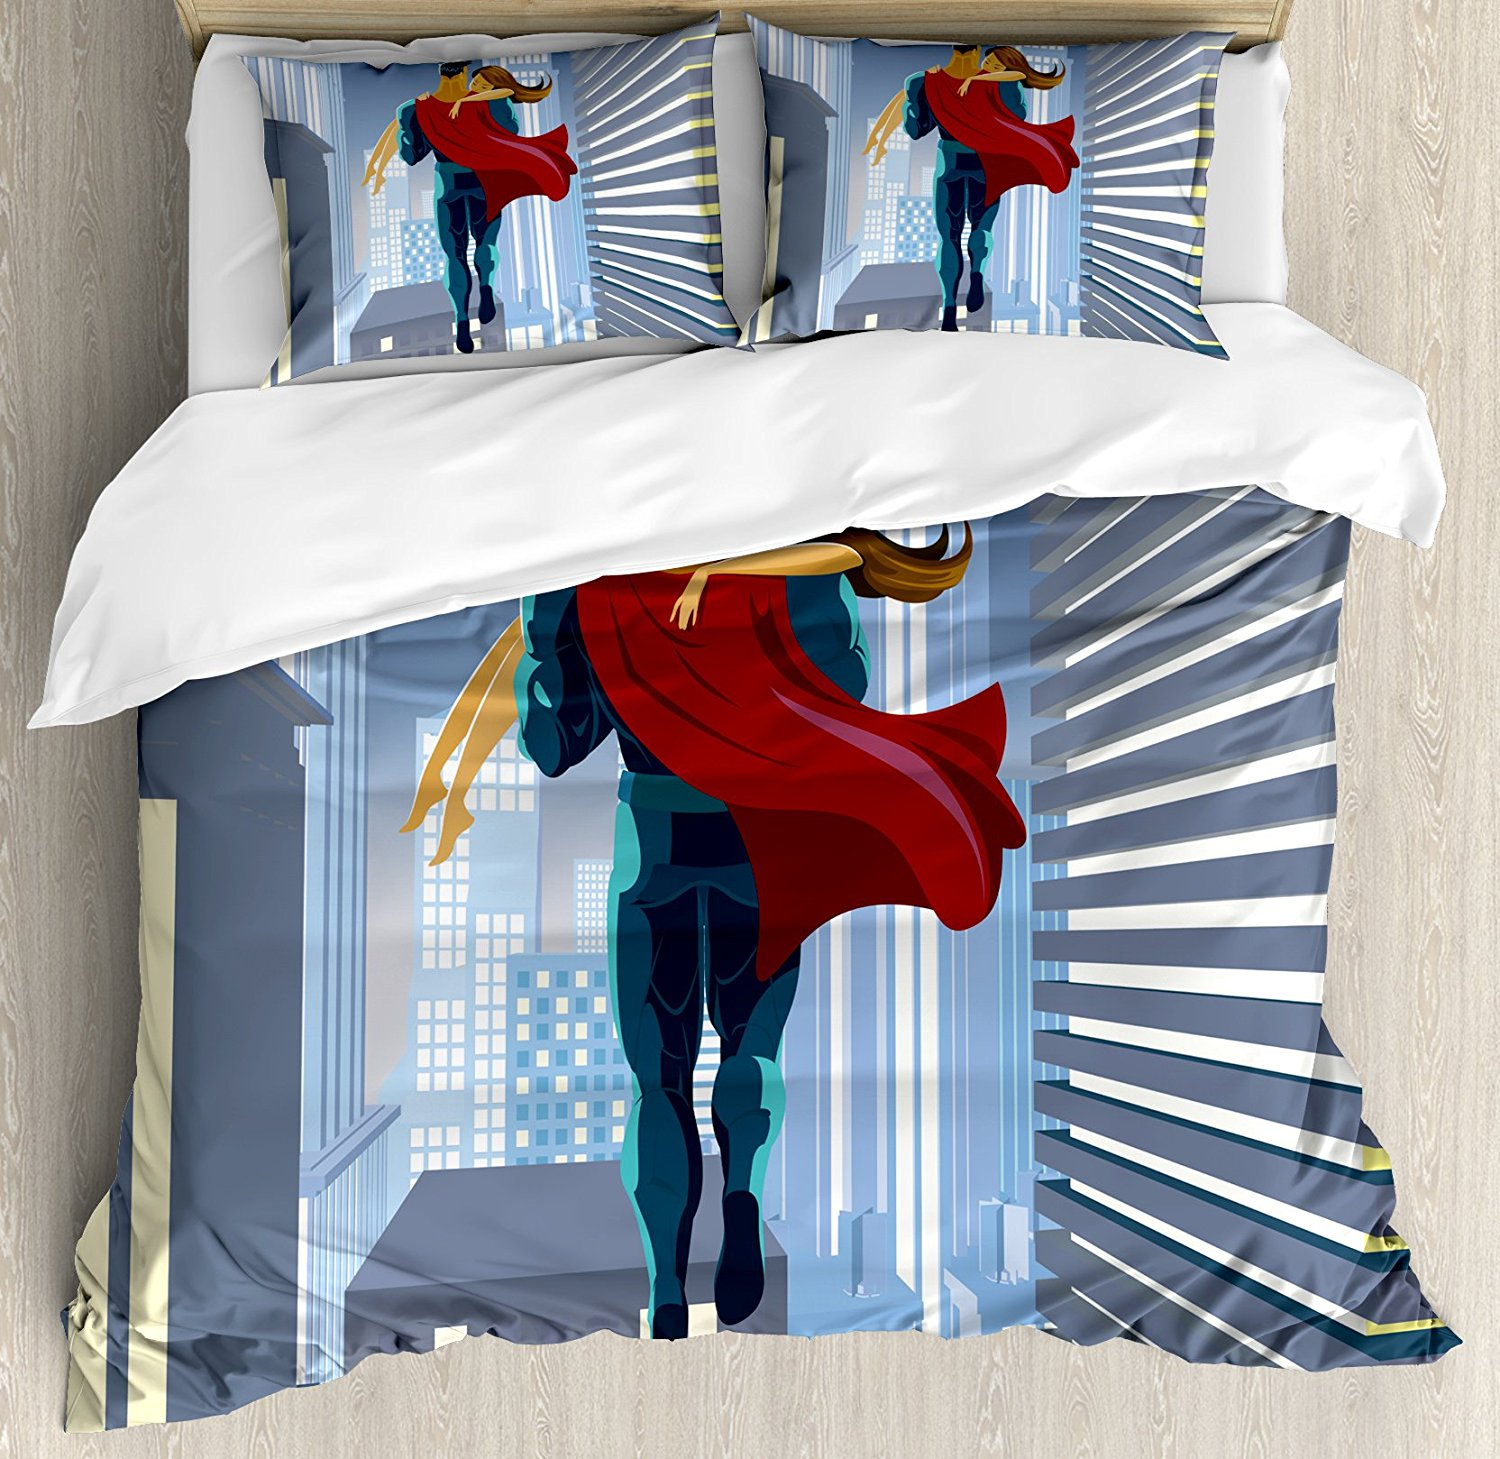 Superhero Duvet Cover Set Romance Man Super Powers Rescues His Beloved Flying in Skyscrapers Love Design 4 Piece Bedding Set